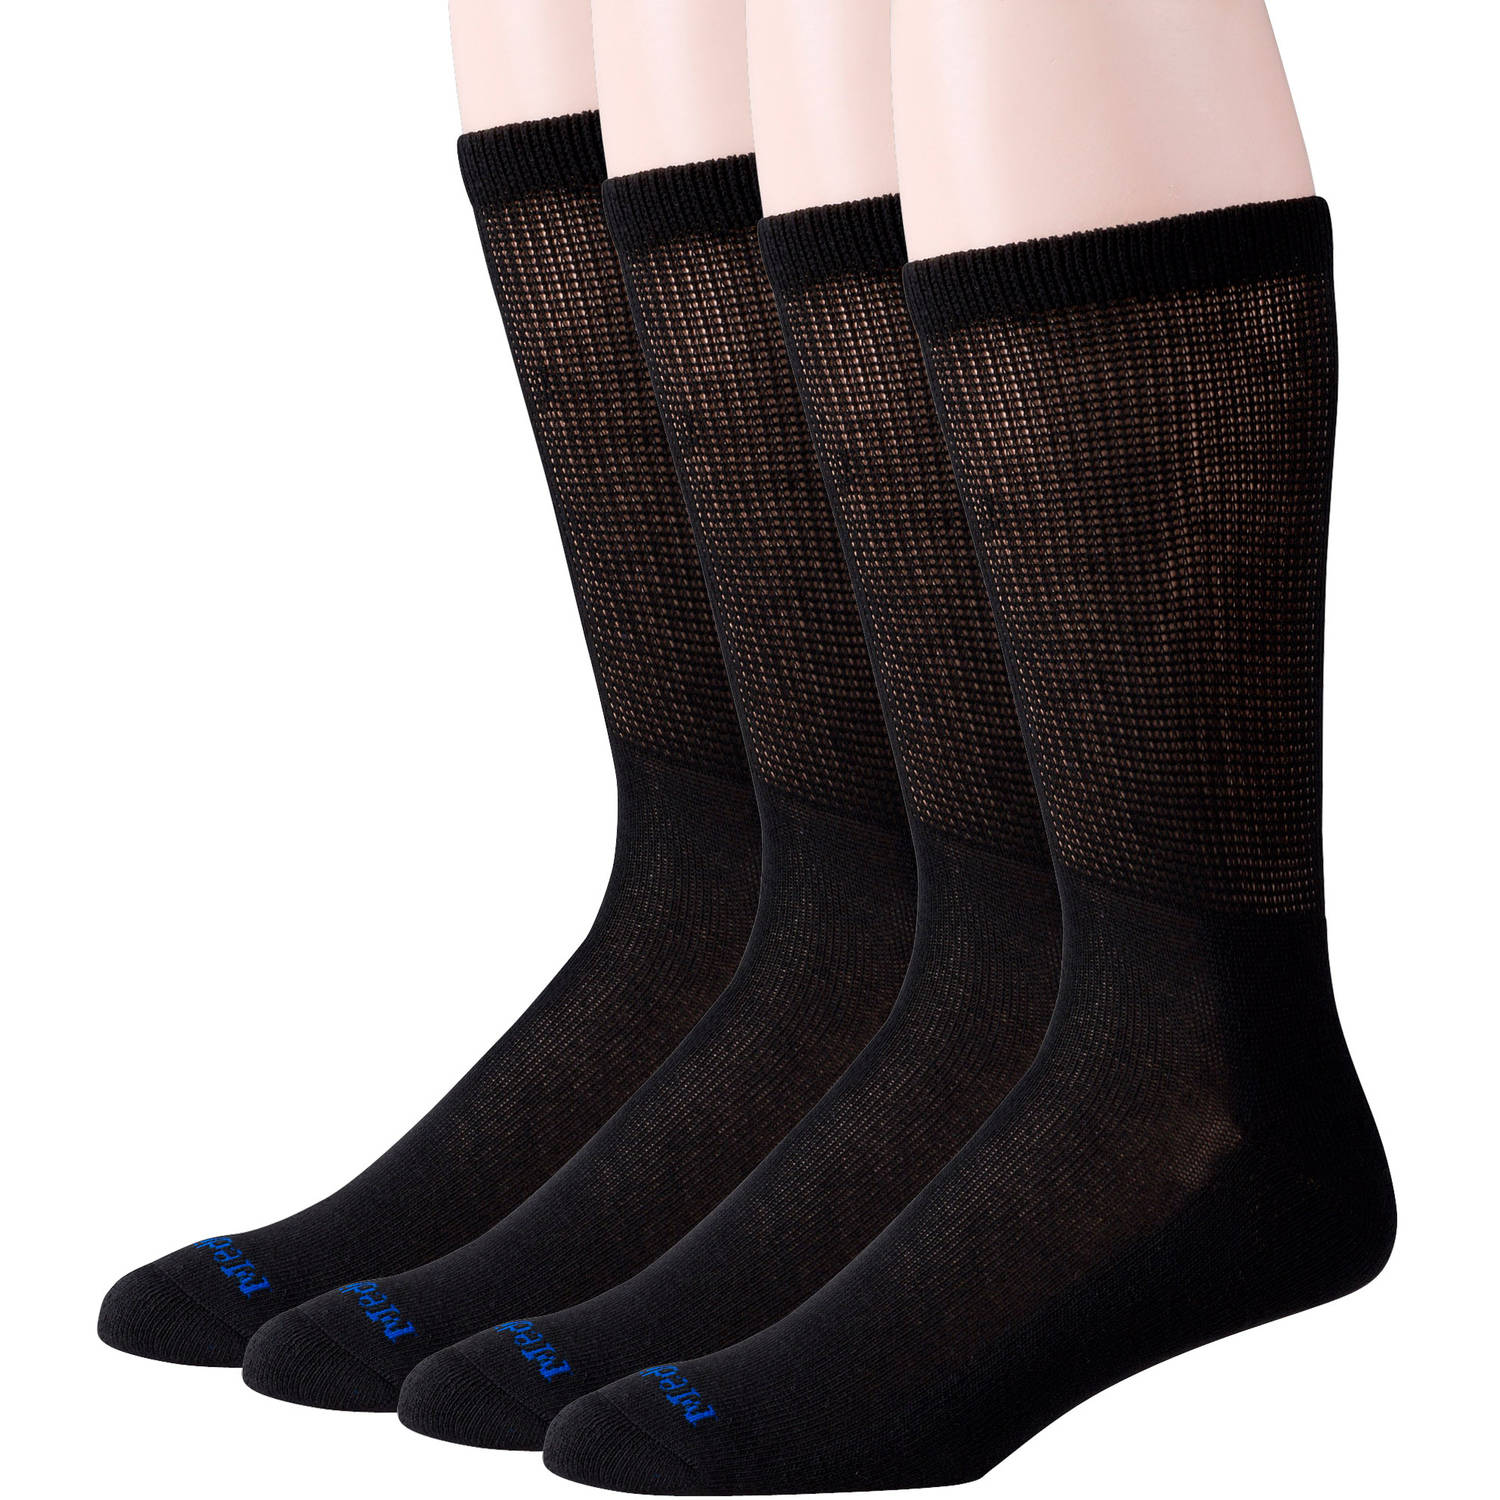 Women's Crew Socks, Black, 4pk